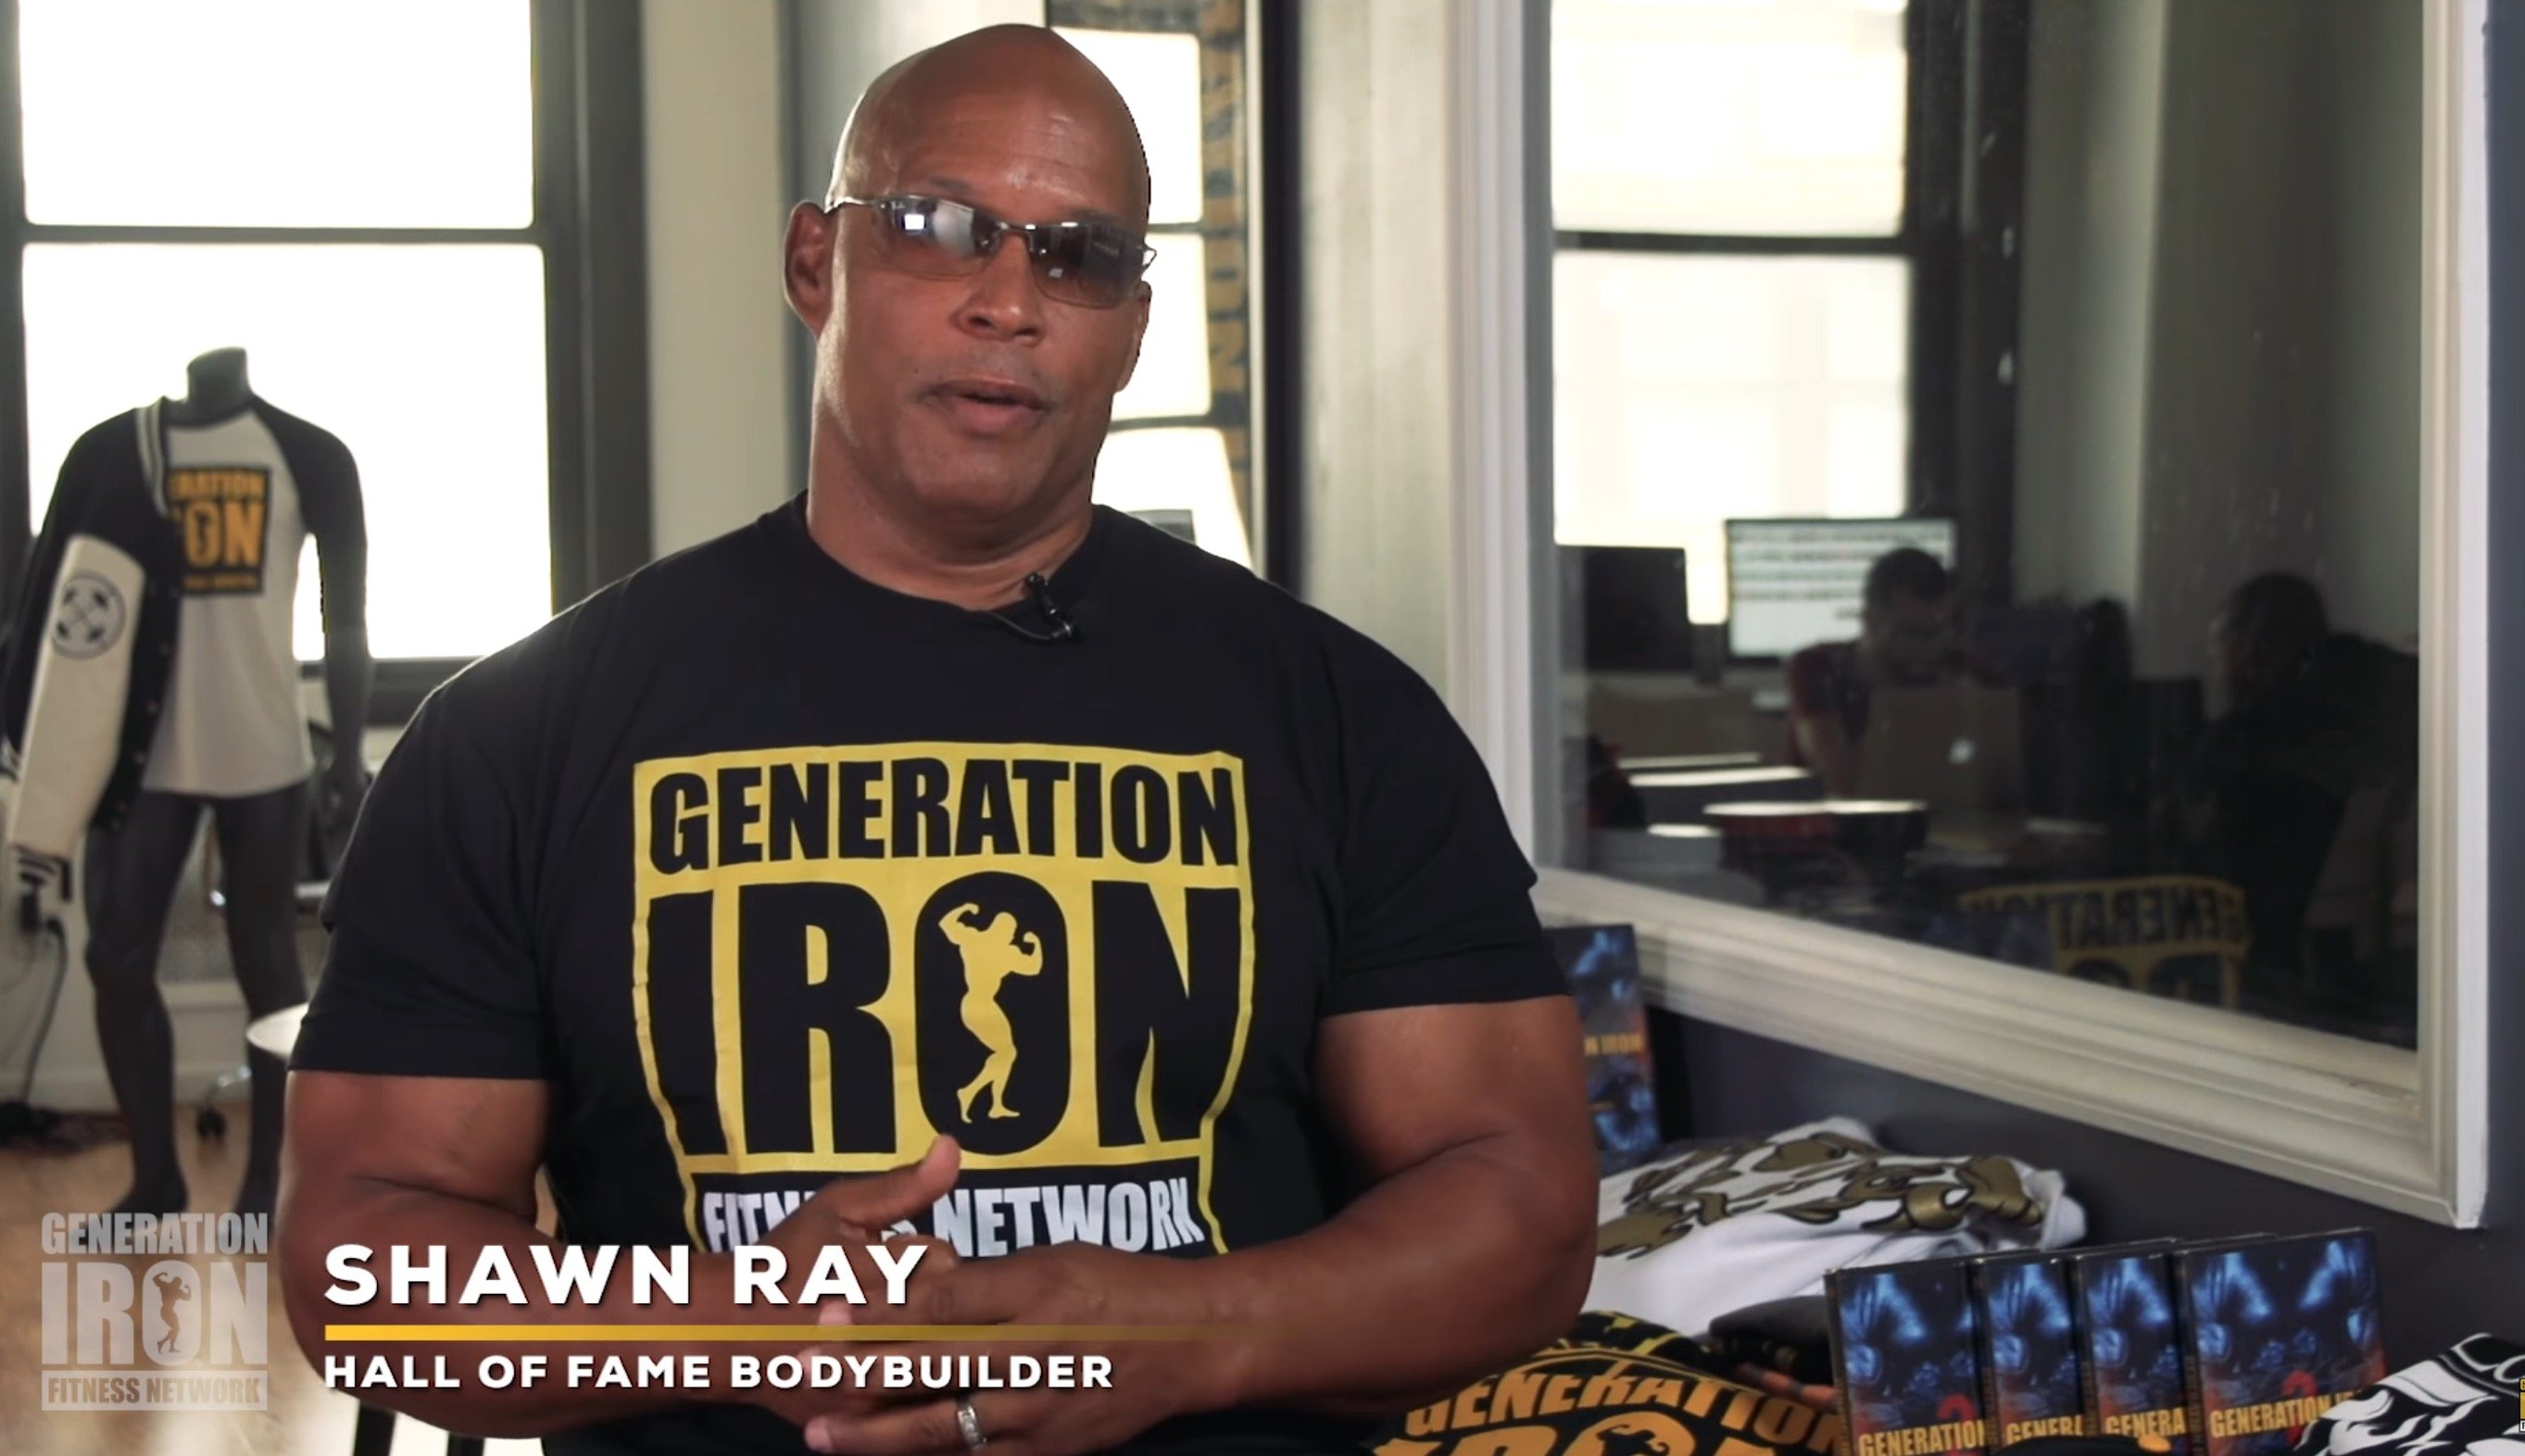 Shawn Ray - Generation Iron